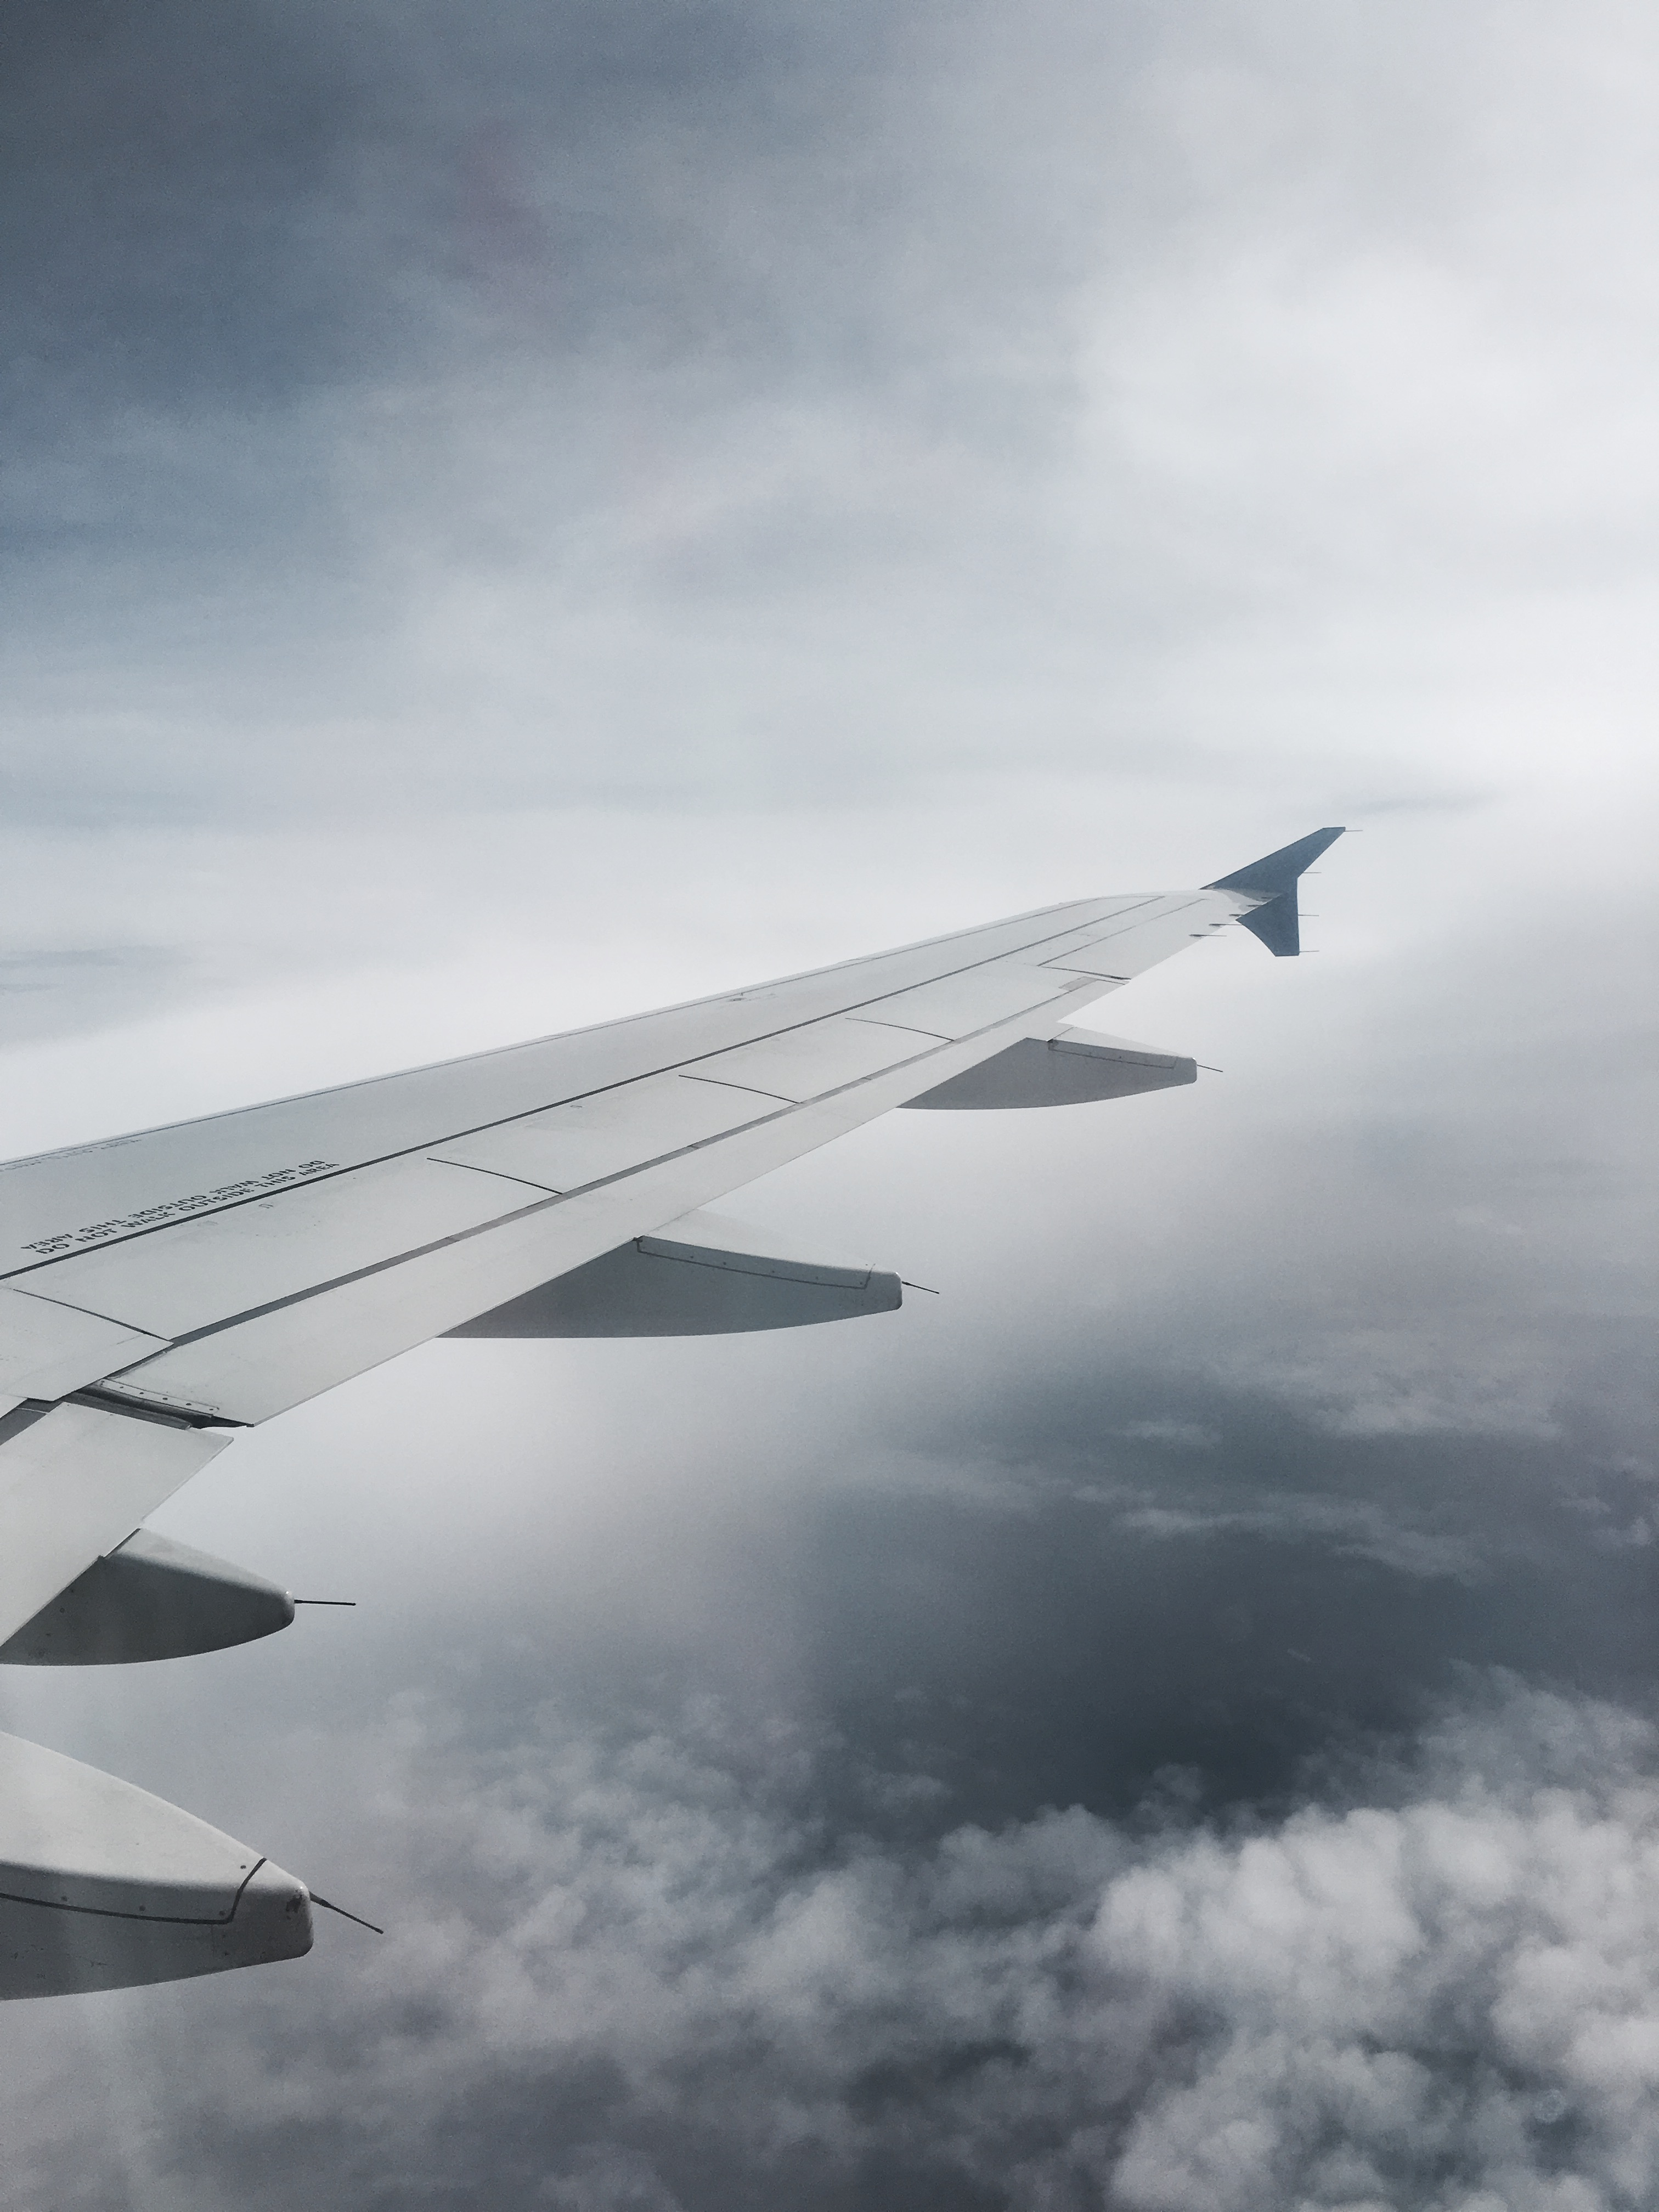 Airplane window, cloudy, sky, plane wing, aesthetic, photography ...